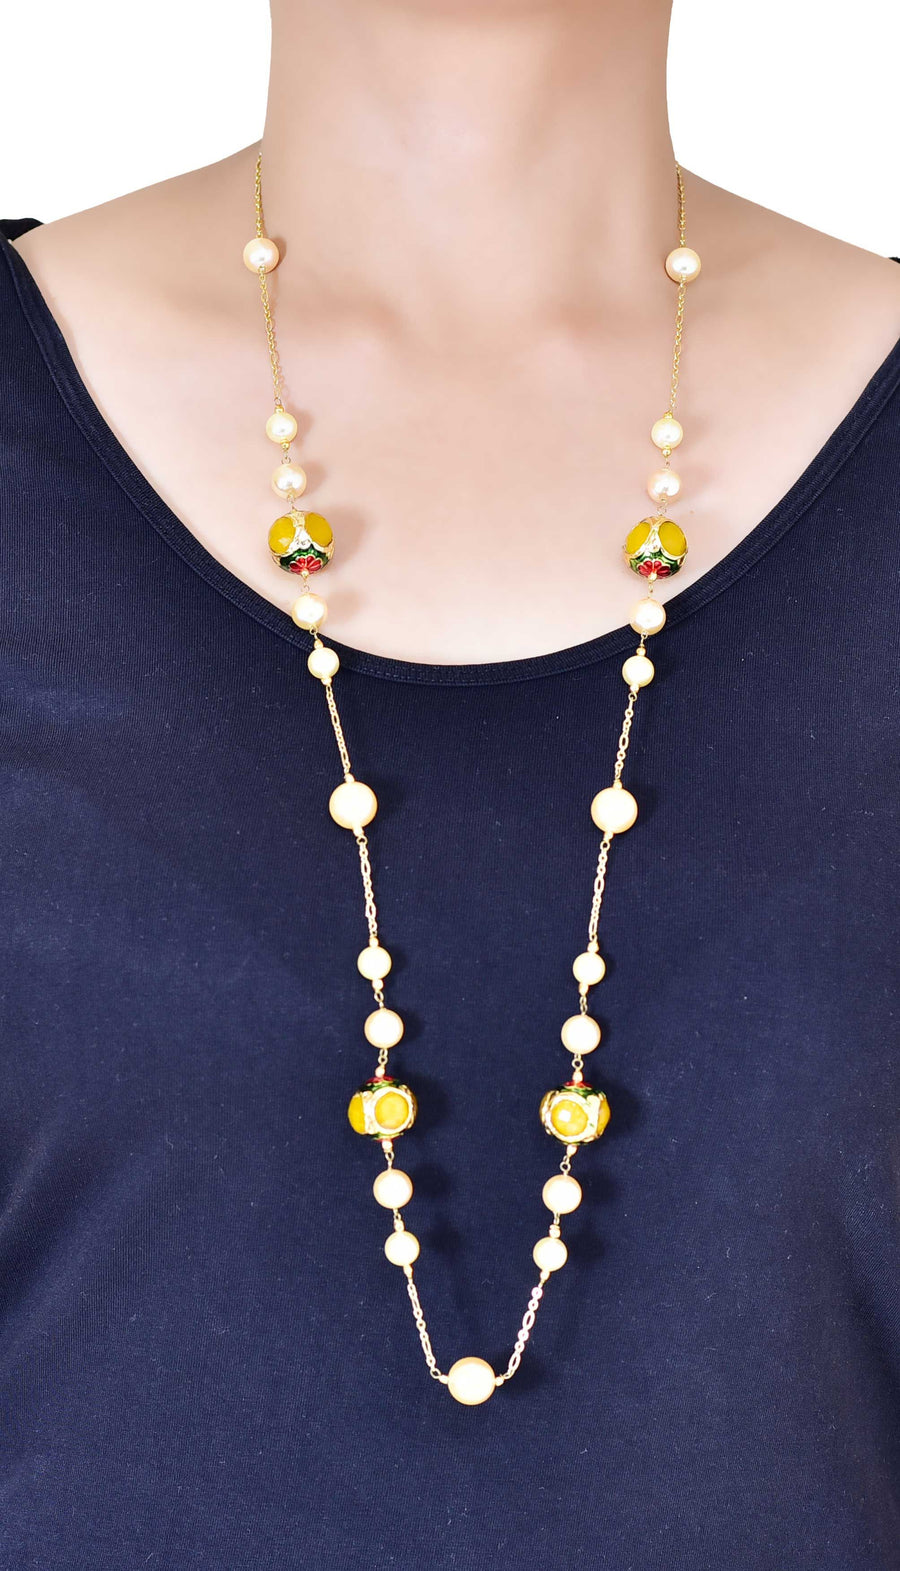 Silver Gold Plated Handcrafted 'Caged' Bead Long Necklace with Shell Pearls